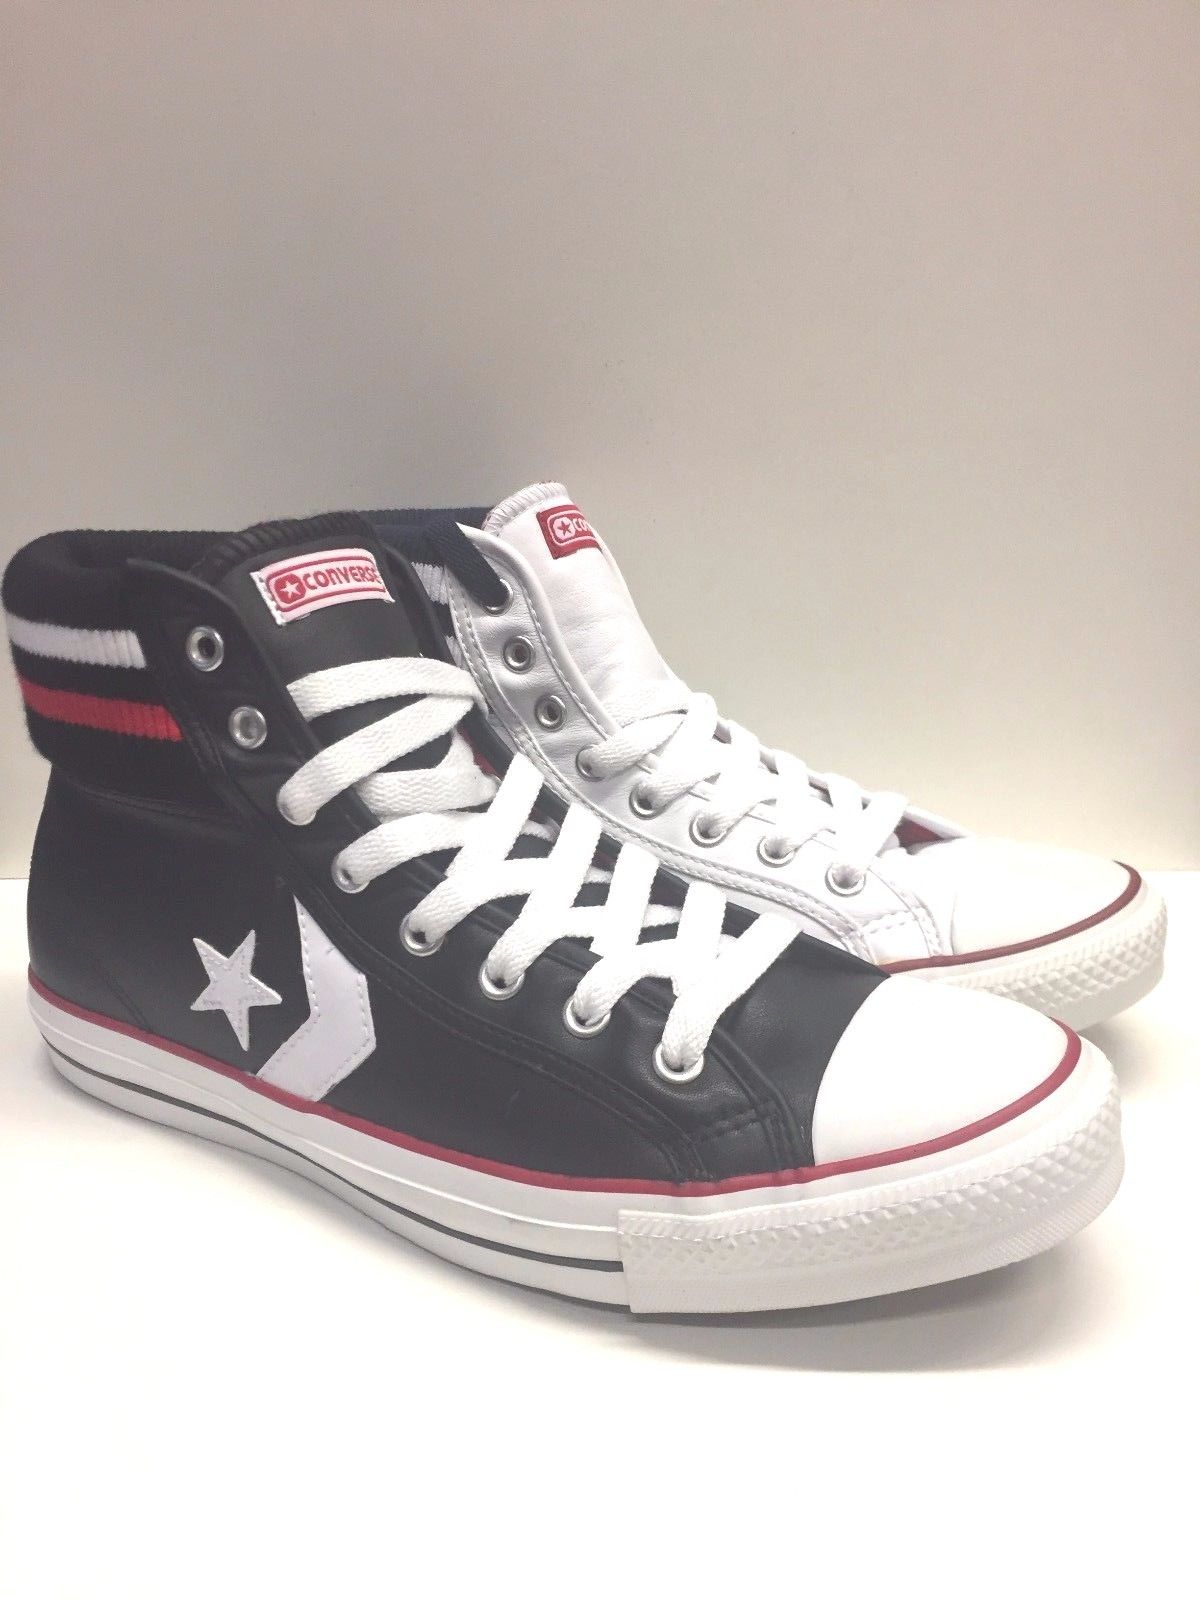 SCARPE SNEAKERS UOMO CONVERSE ORIGINAL STAR PLAYER MID 114349 PELLE SHOES A/I